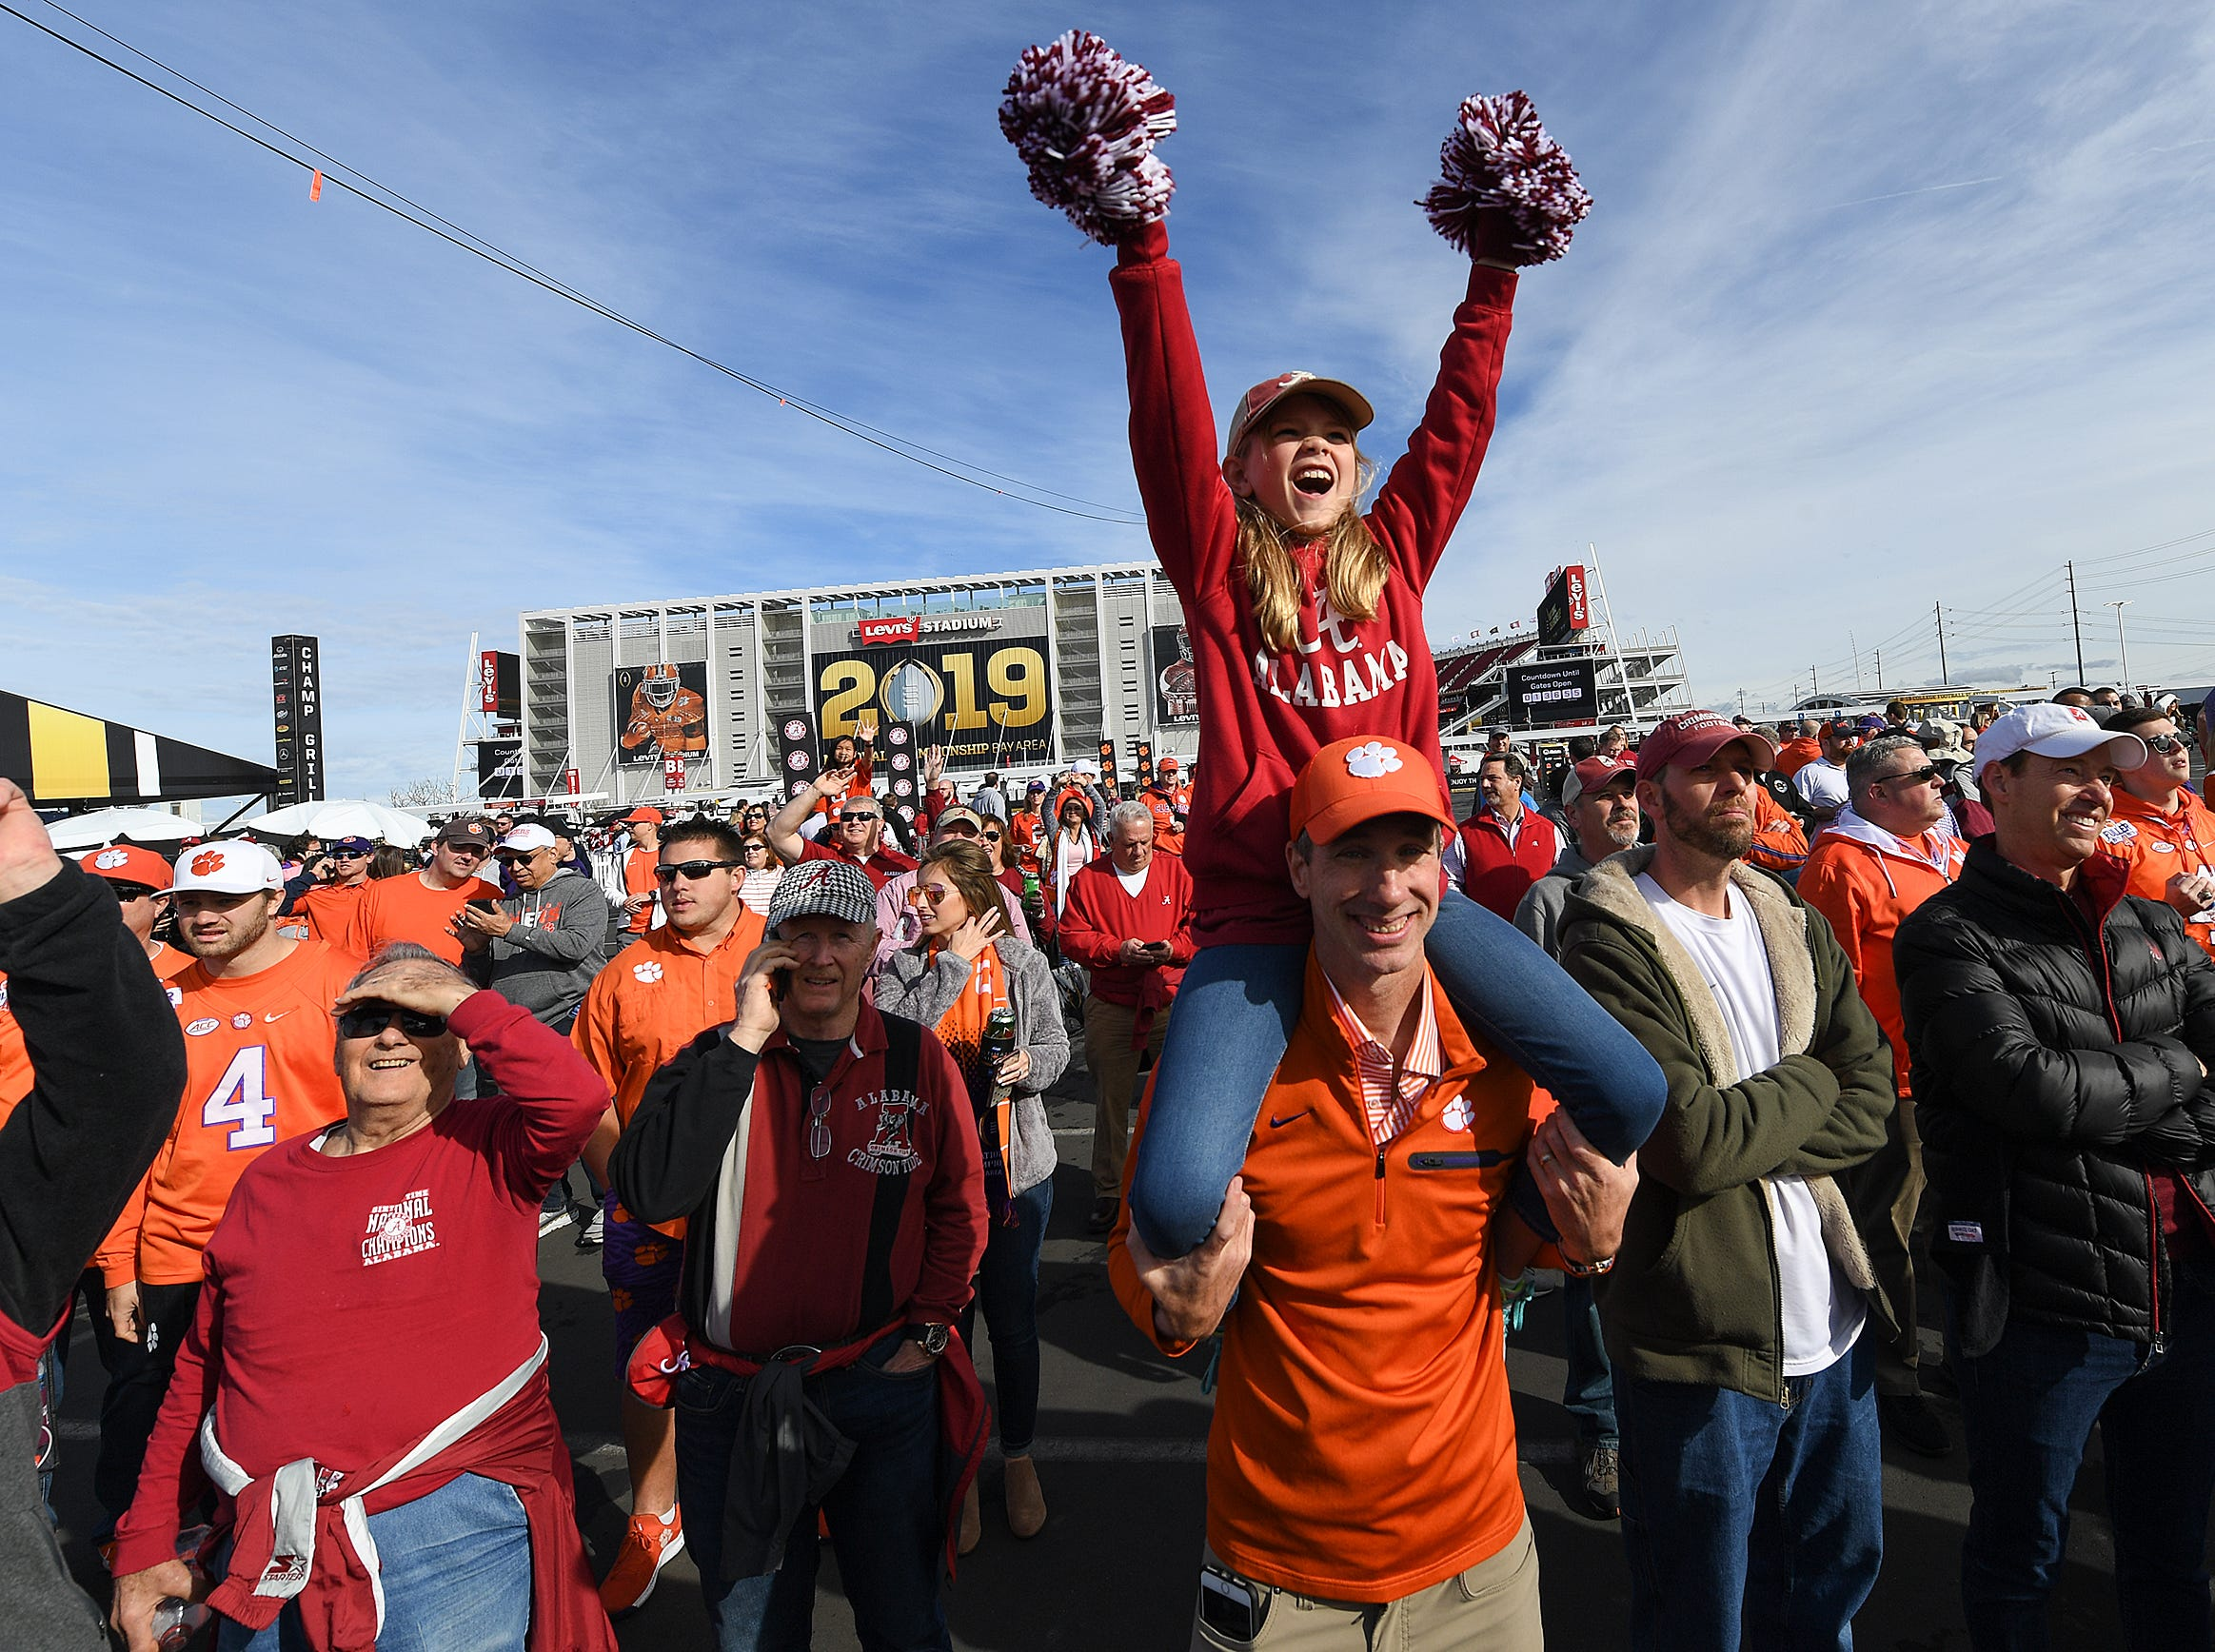 Hadley Miller sits on her father Russ's shoulders during the College Football Championship Playoff Tailgate outside Levi's Stadium in Santa Clara, CA Monday, January 7, 2019. The pair are from Greenville.